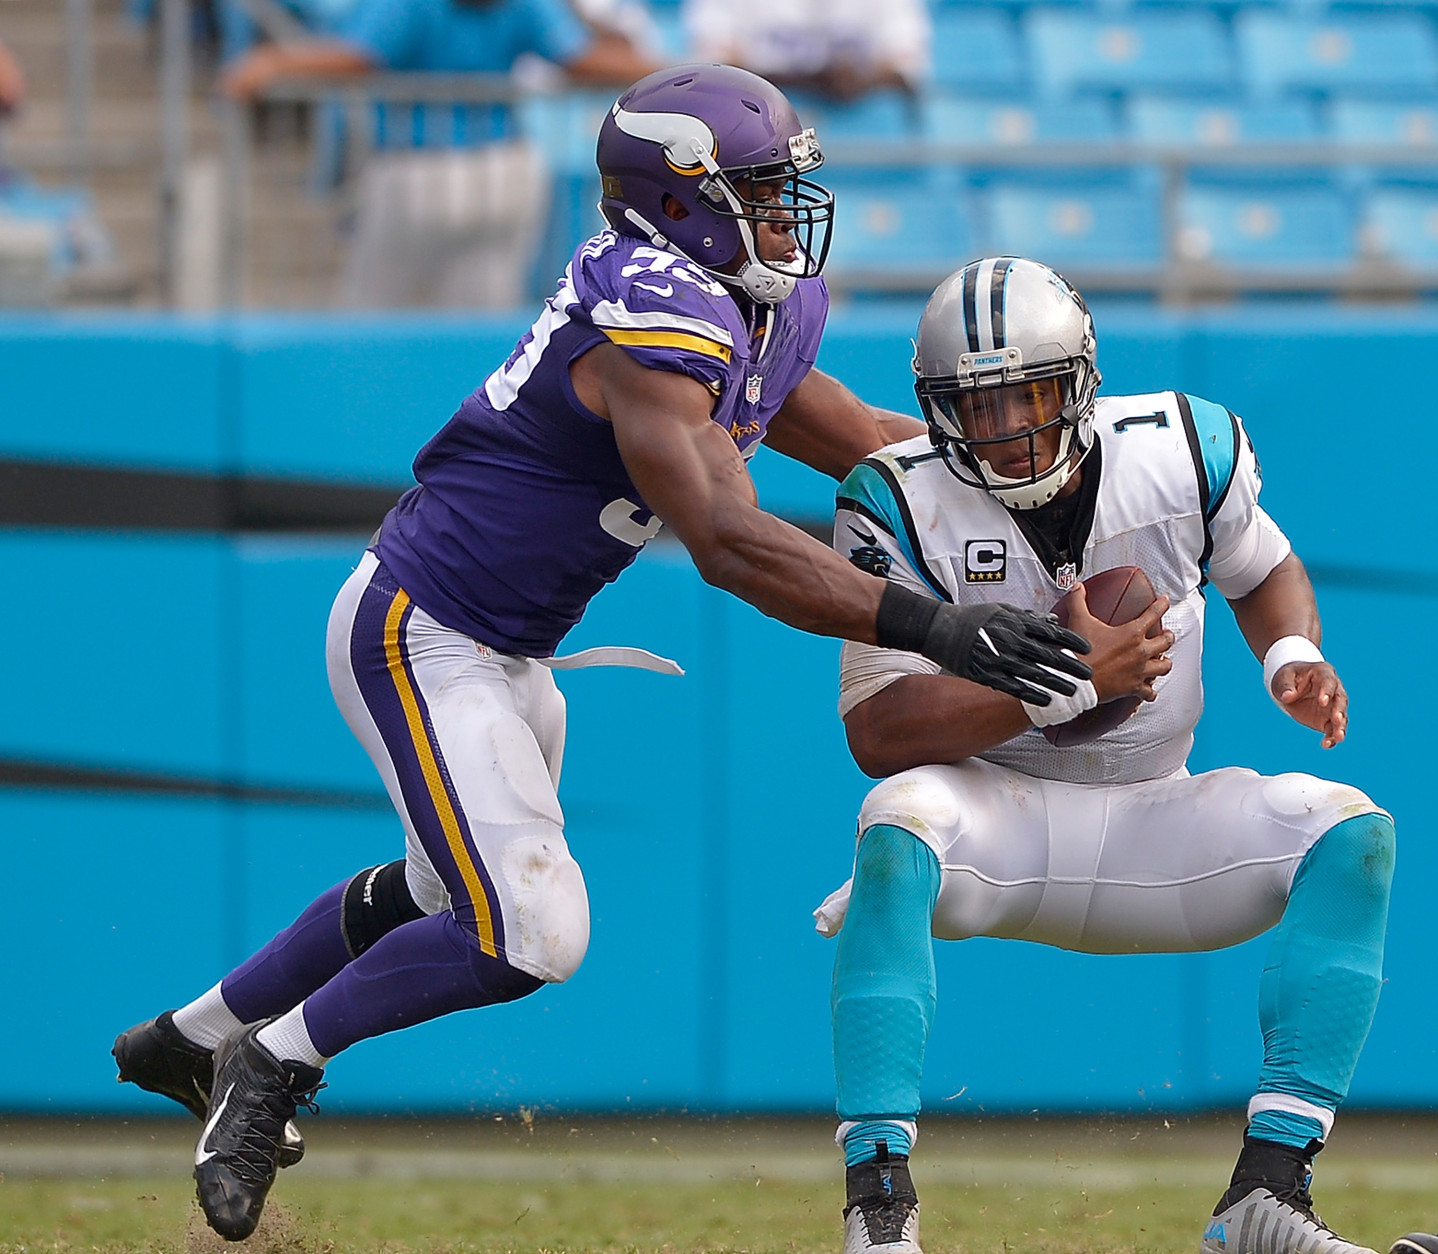 CHARLOTTE, NC - SEPTEMBER 25:  Danielle Hunter #99 of the Minnesota Vikings sacks Cam Newton #1 of the Carolina Panthers during the game at Bank of America Stadium on September 25, 2016 in Charlotte, North Carolina. The Vikings won 22-10.  (Photo by Grant Halverson/Getty Images)